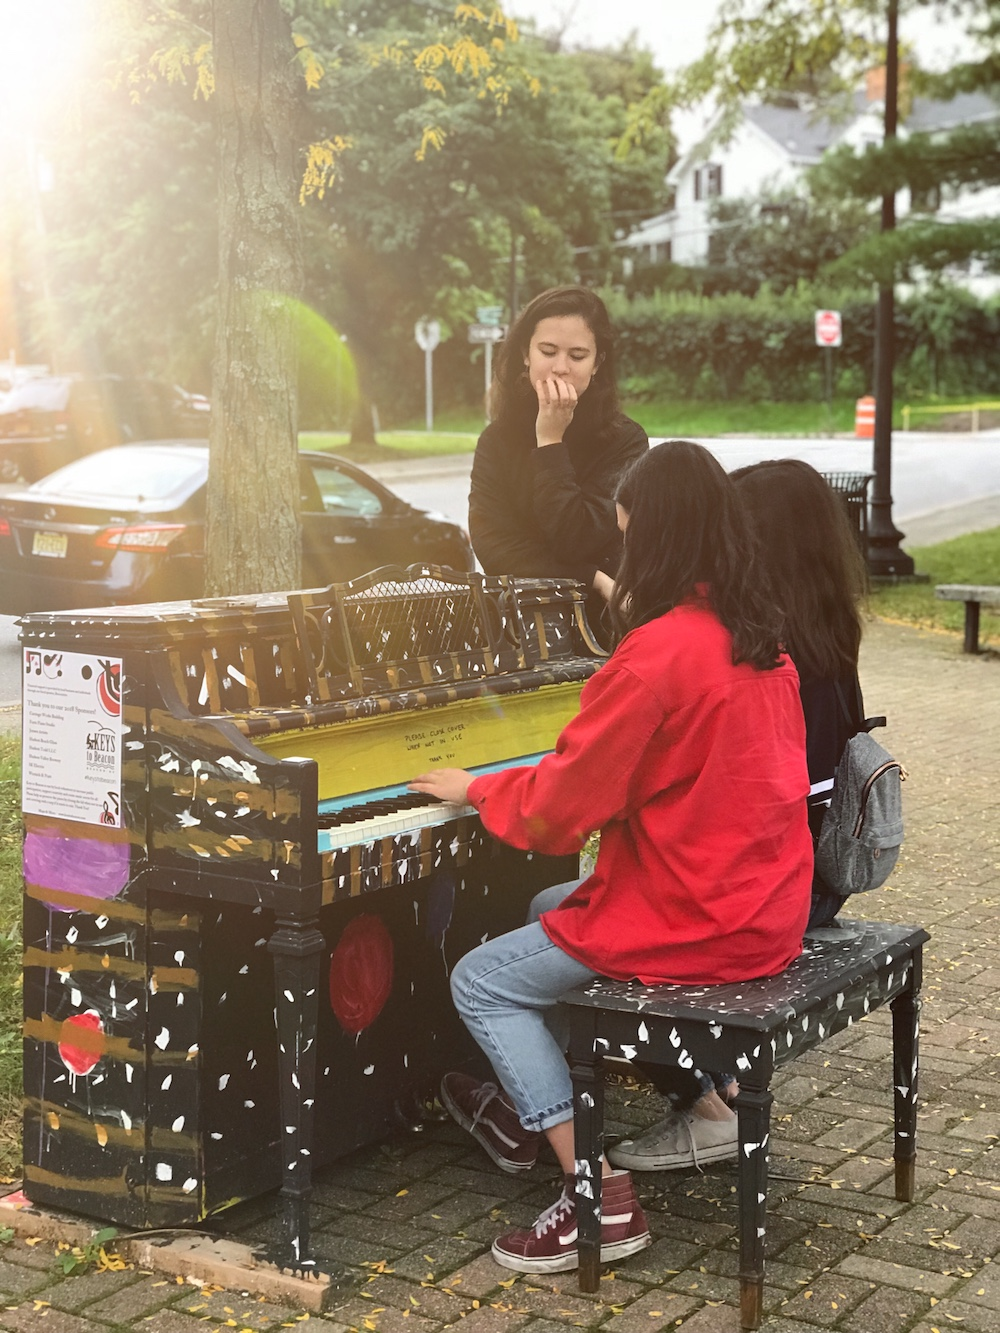 Piano at Bank Square at Polhill Park  Photo Credit: Izdihar Dabashi